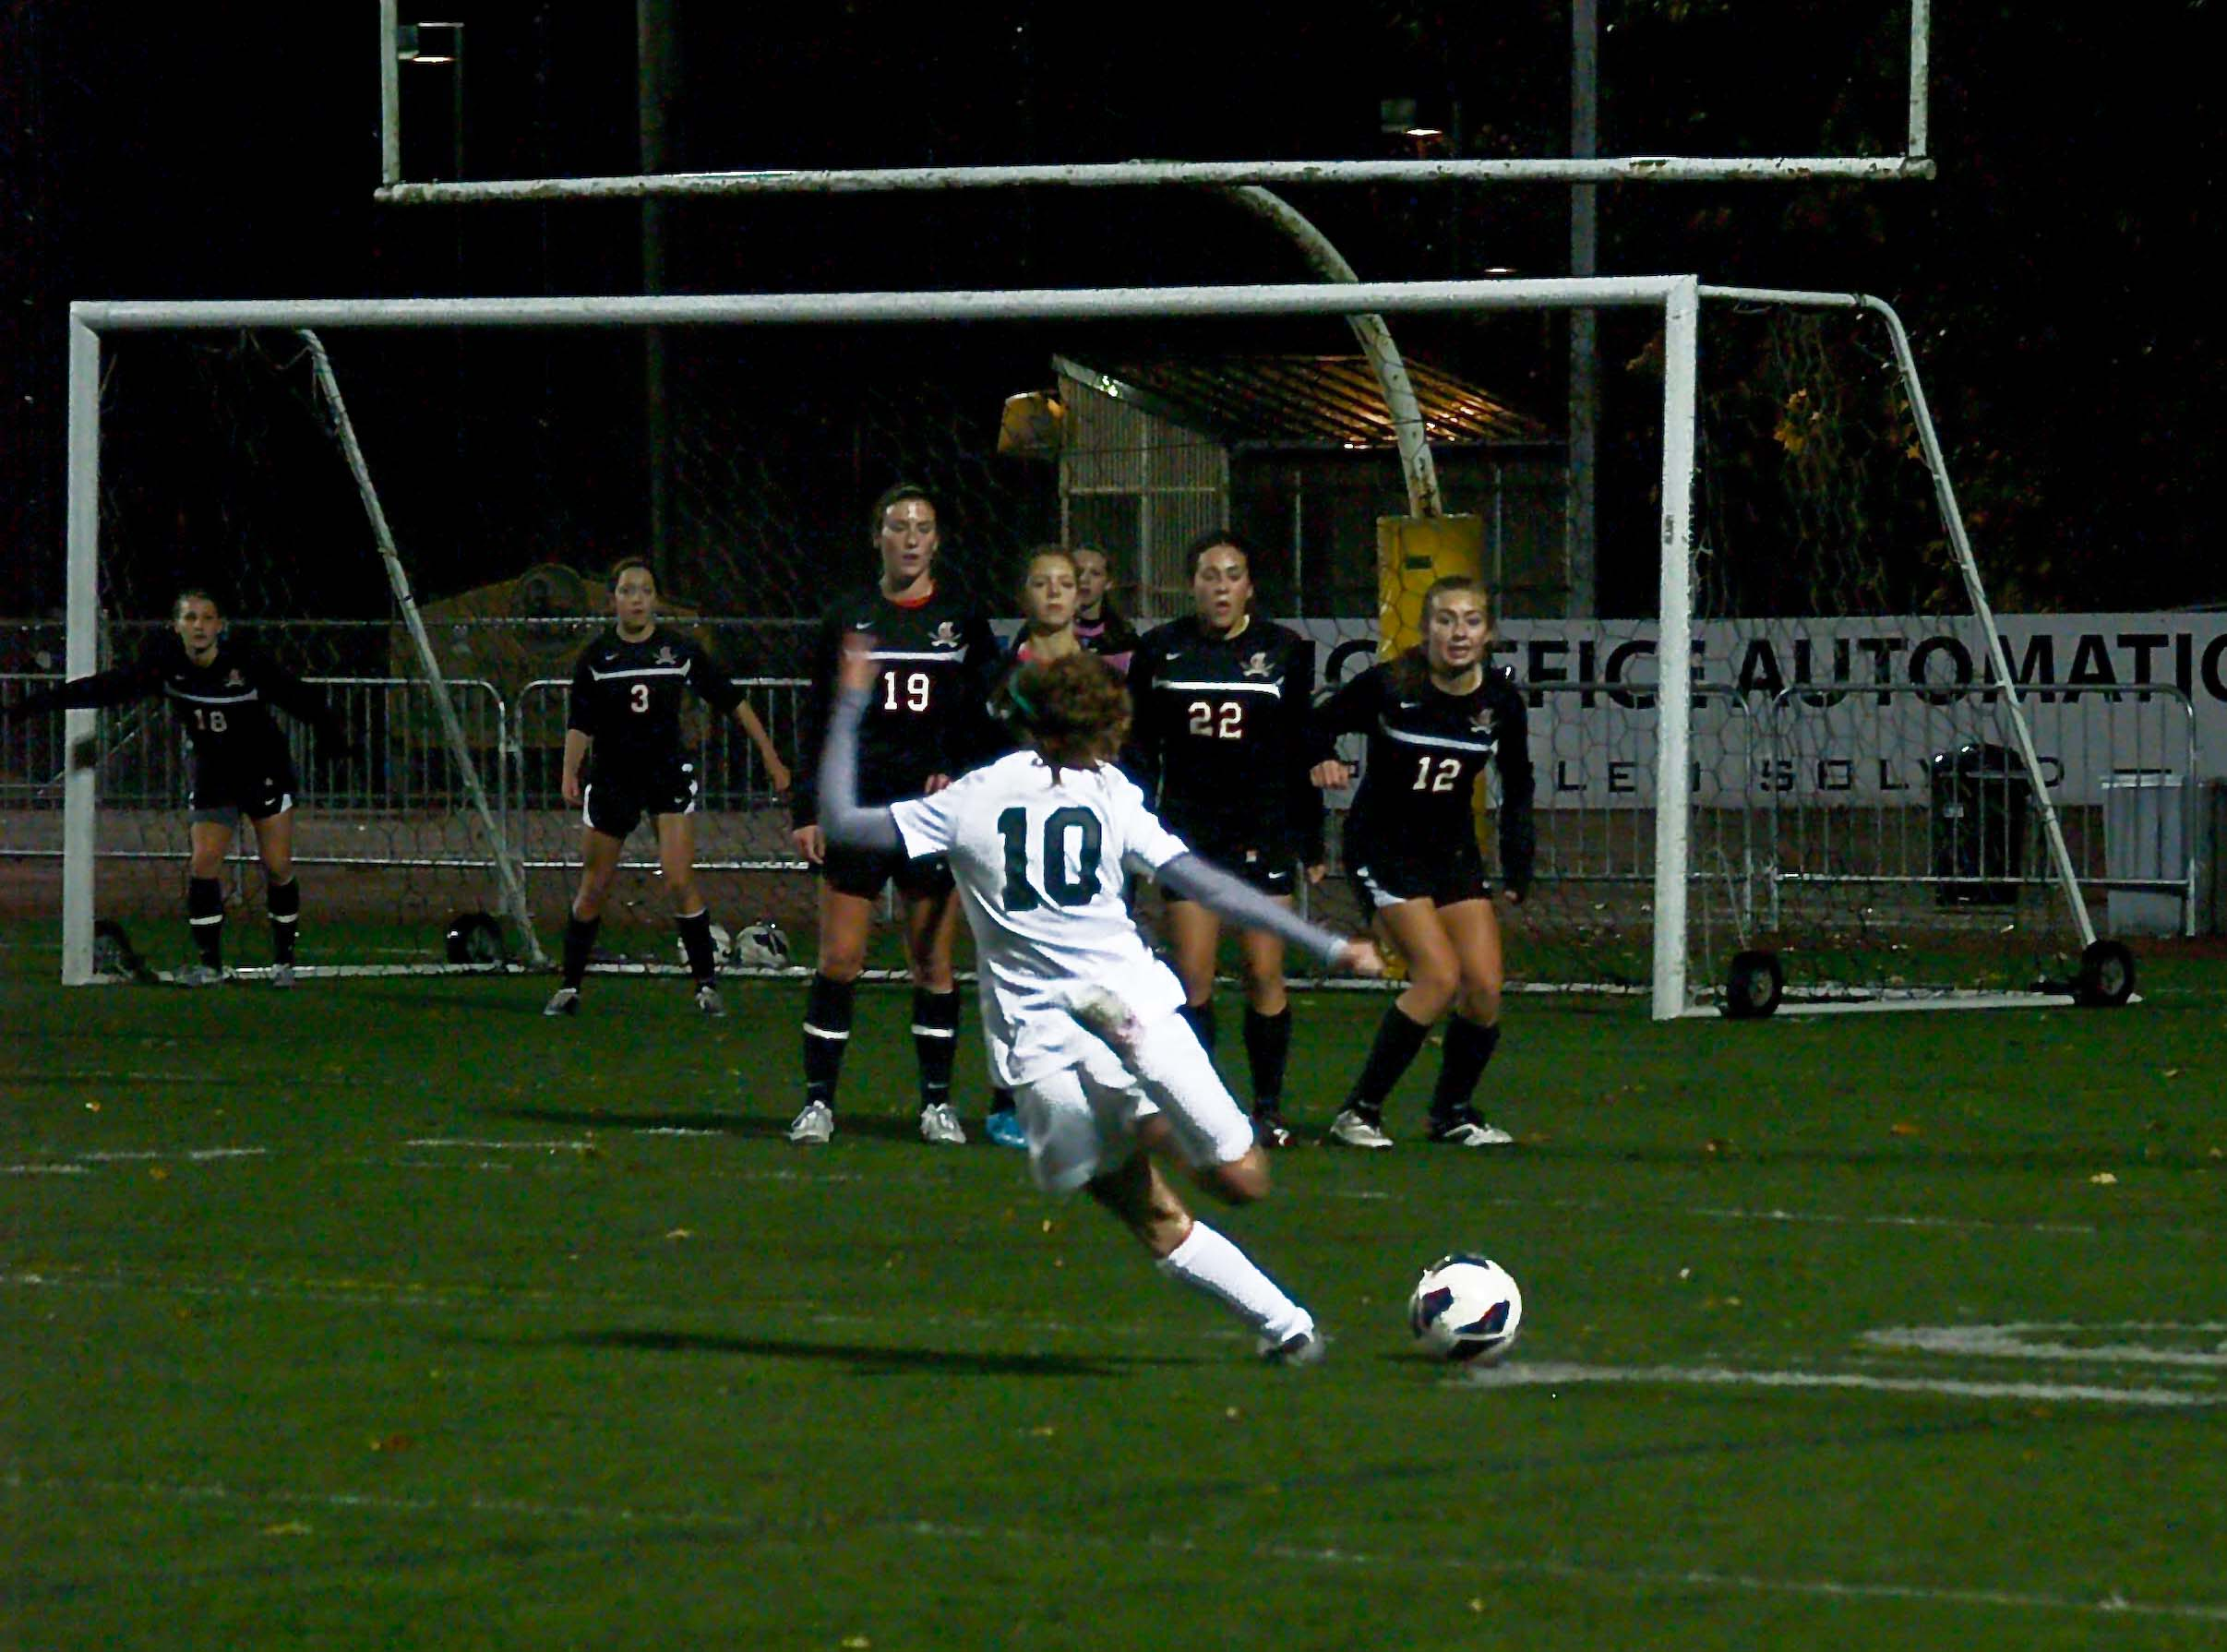 West Linn girls soccer prepare for playoffs